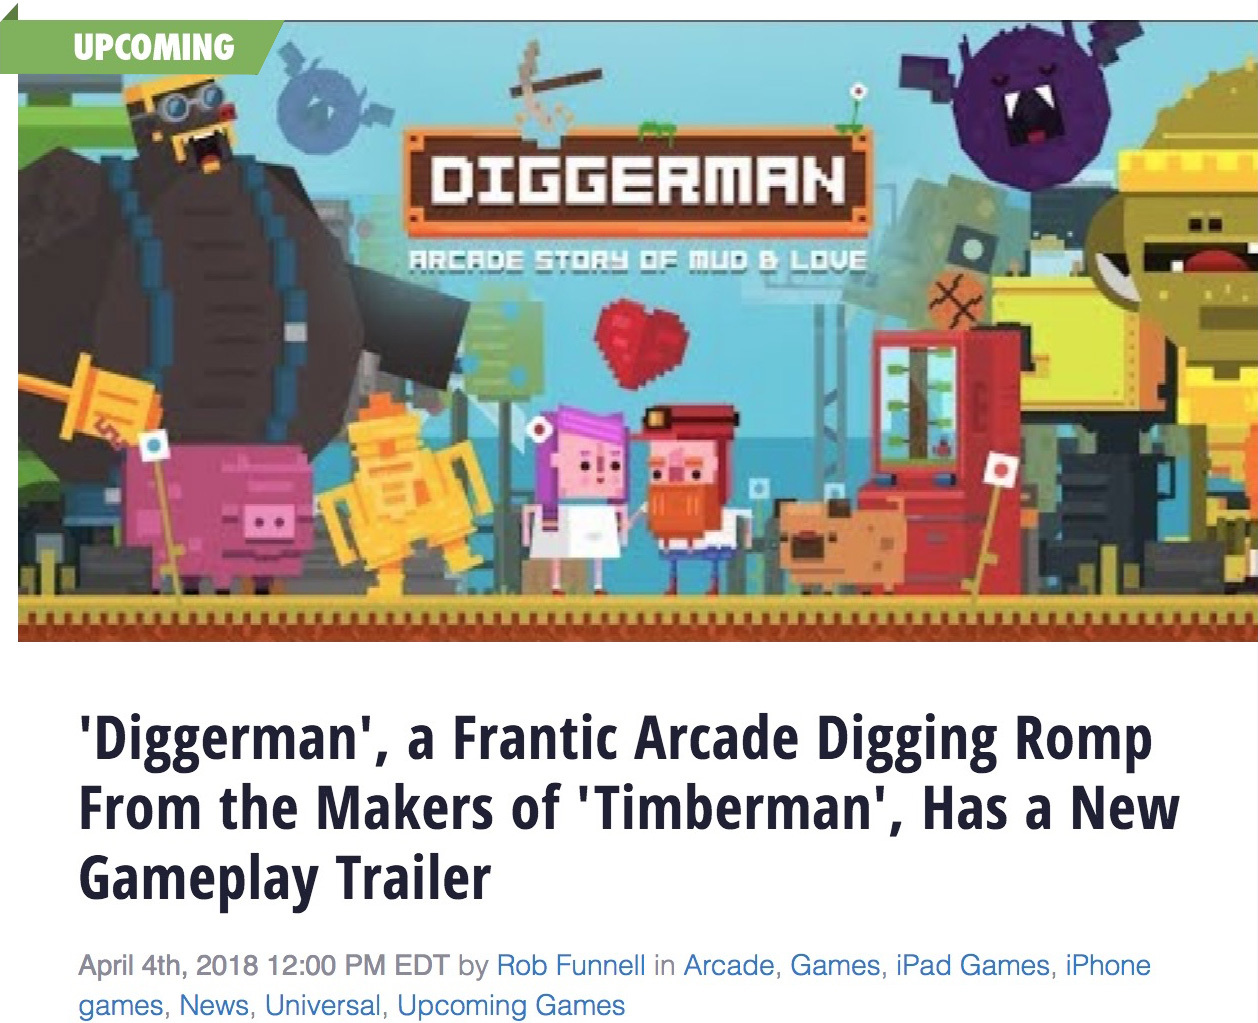 Touch Arcade wrote about our upcoming Diggerman game